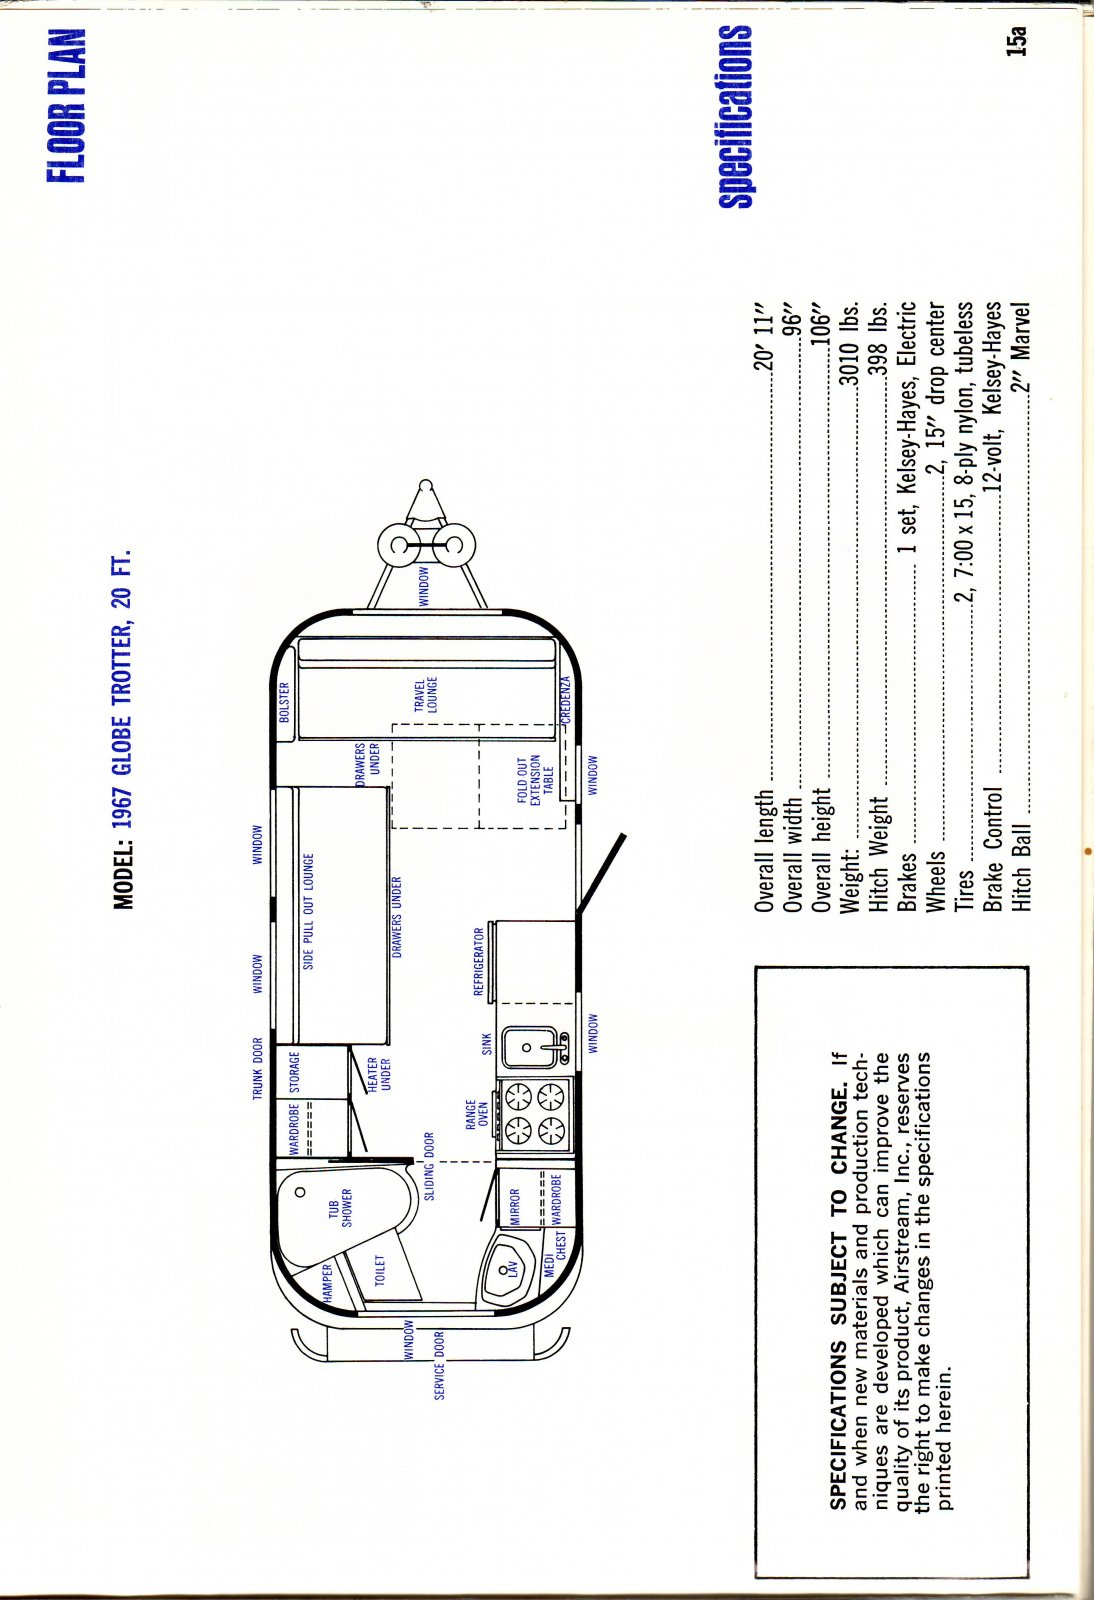 Click image for larger version  Name:Airstream manual 15bb.jpg Views:107 Size:202.1 KB ID:77477